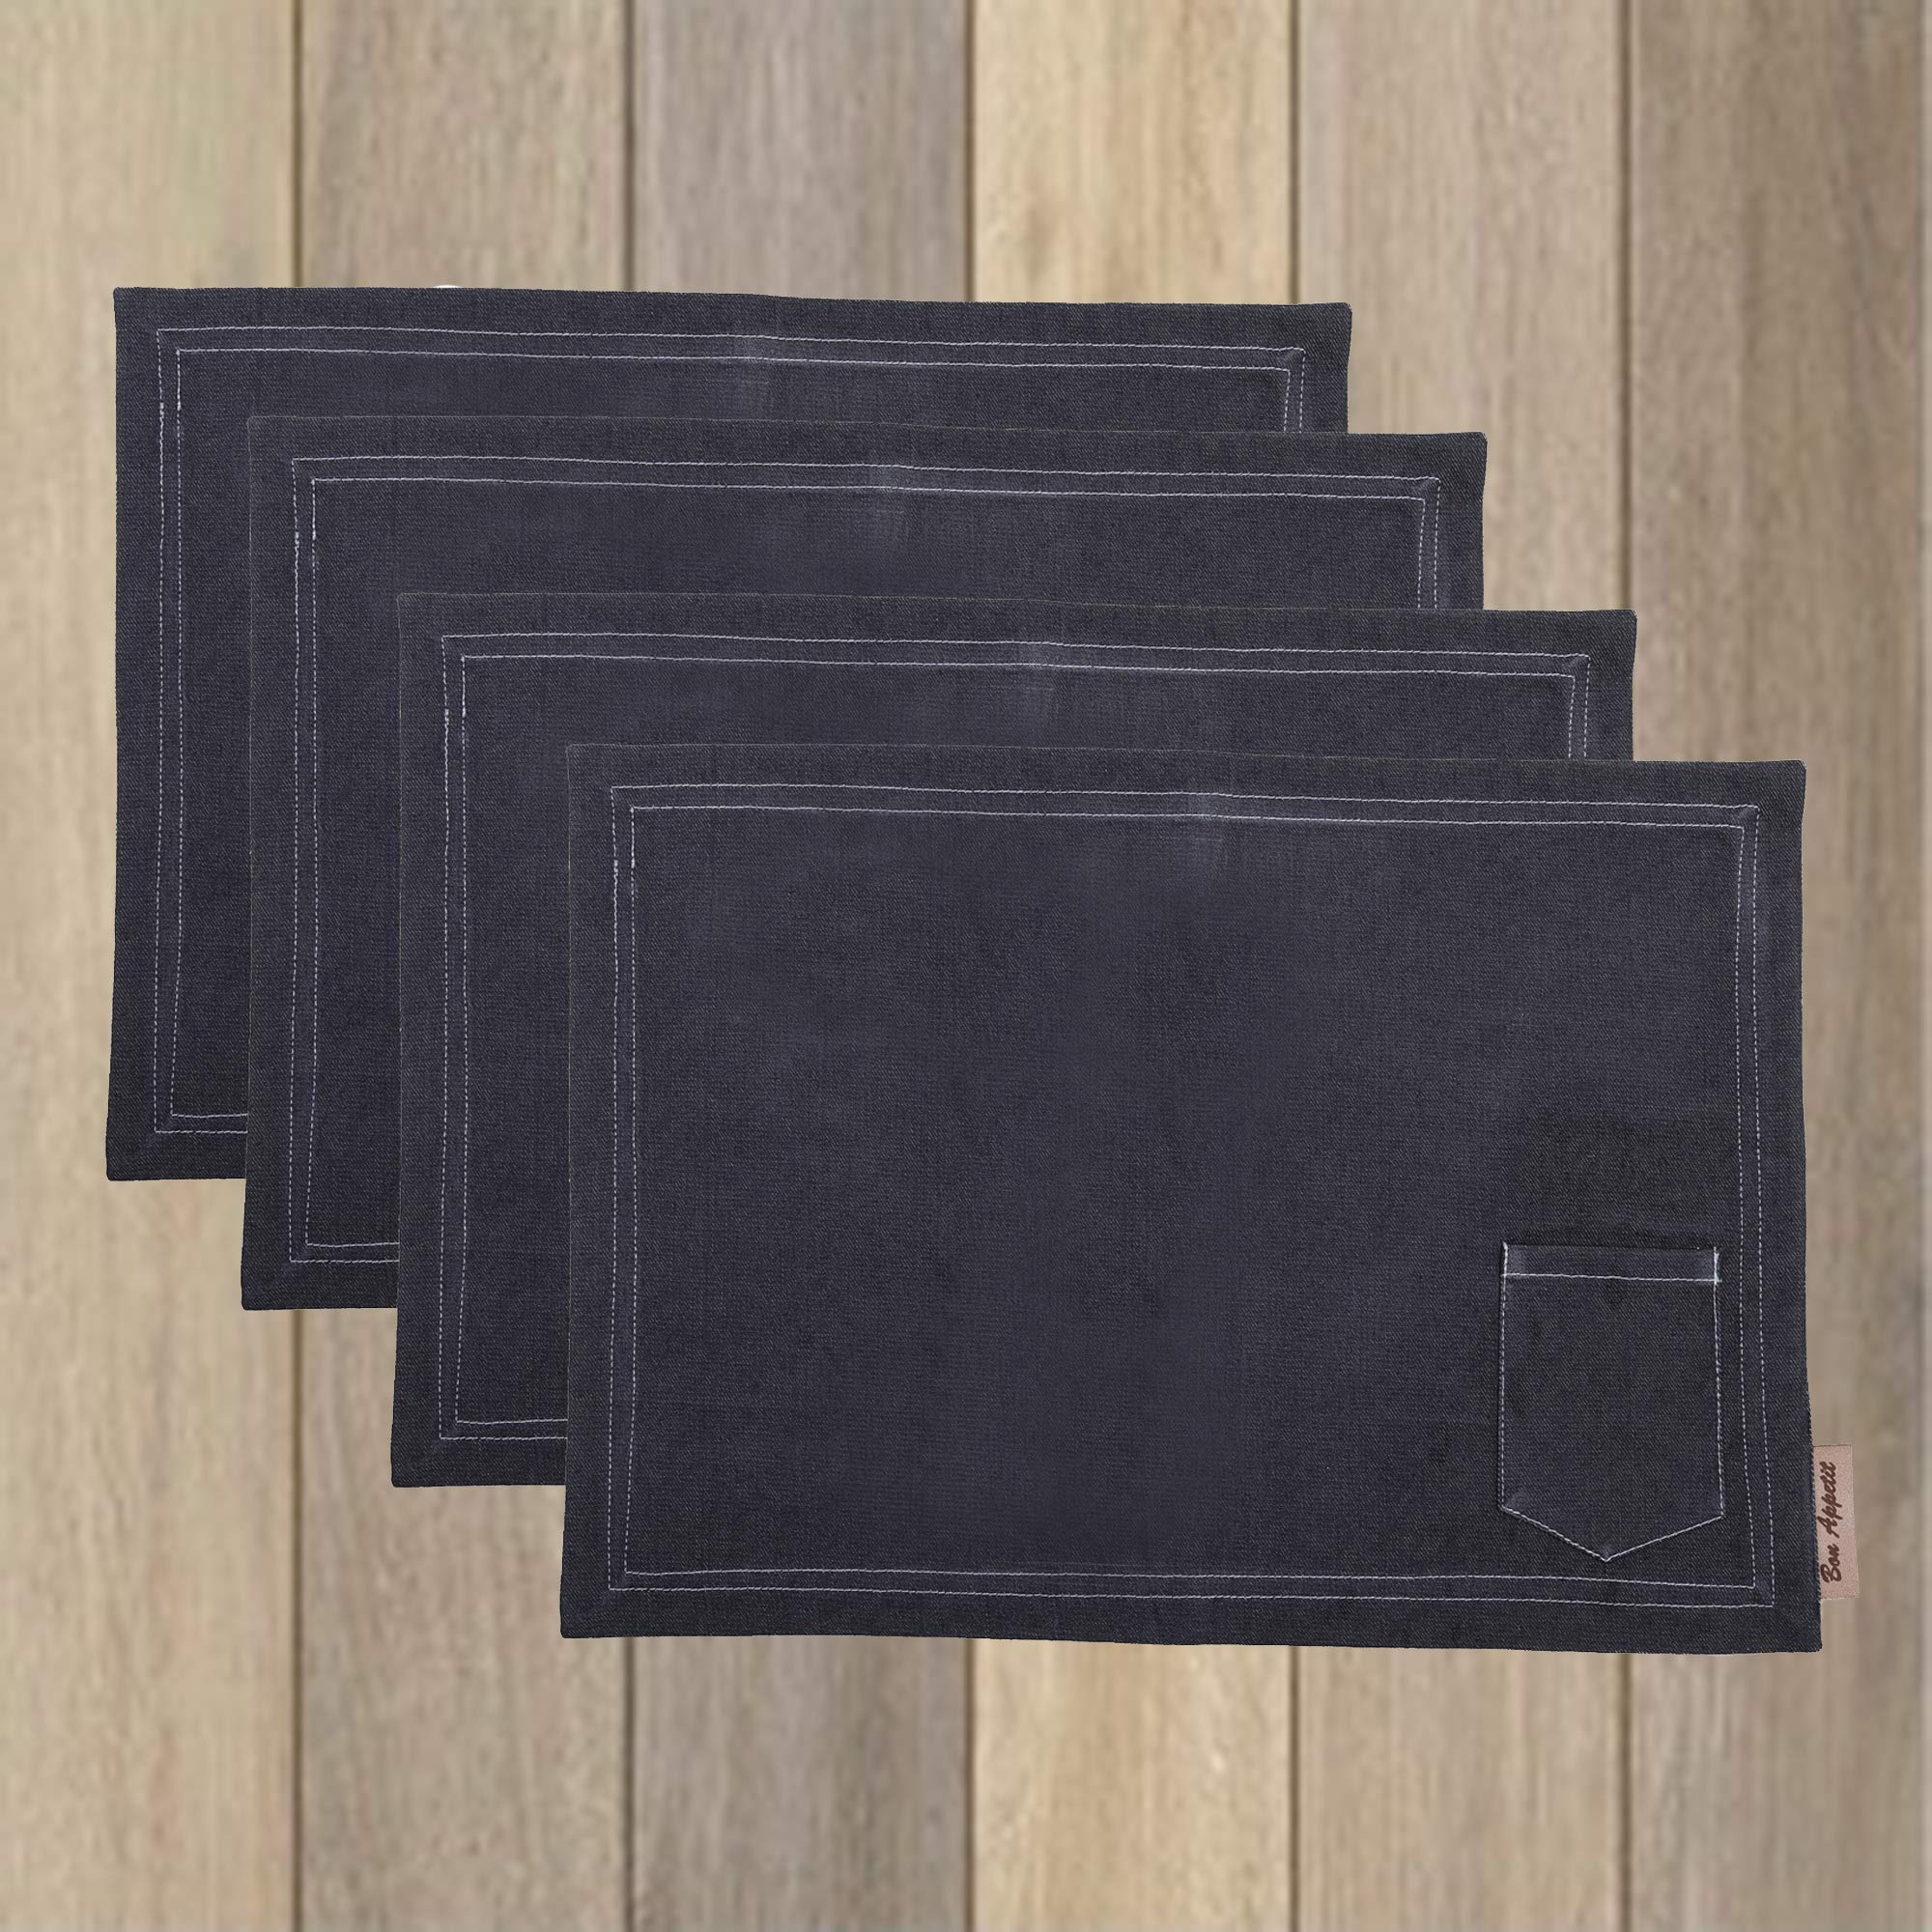 Denim Placemats, Set of 4, 13 X 19 Inch, With Utensil Pocket & Denim Stitch, For Dinner Parties, Summer, Outdoor Picnics & Everyday Use by Bon Appetit